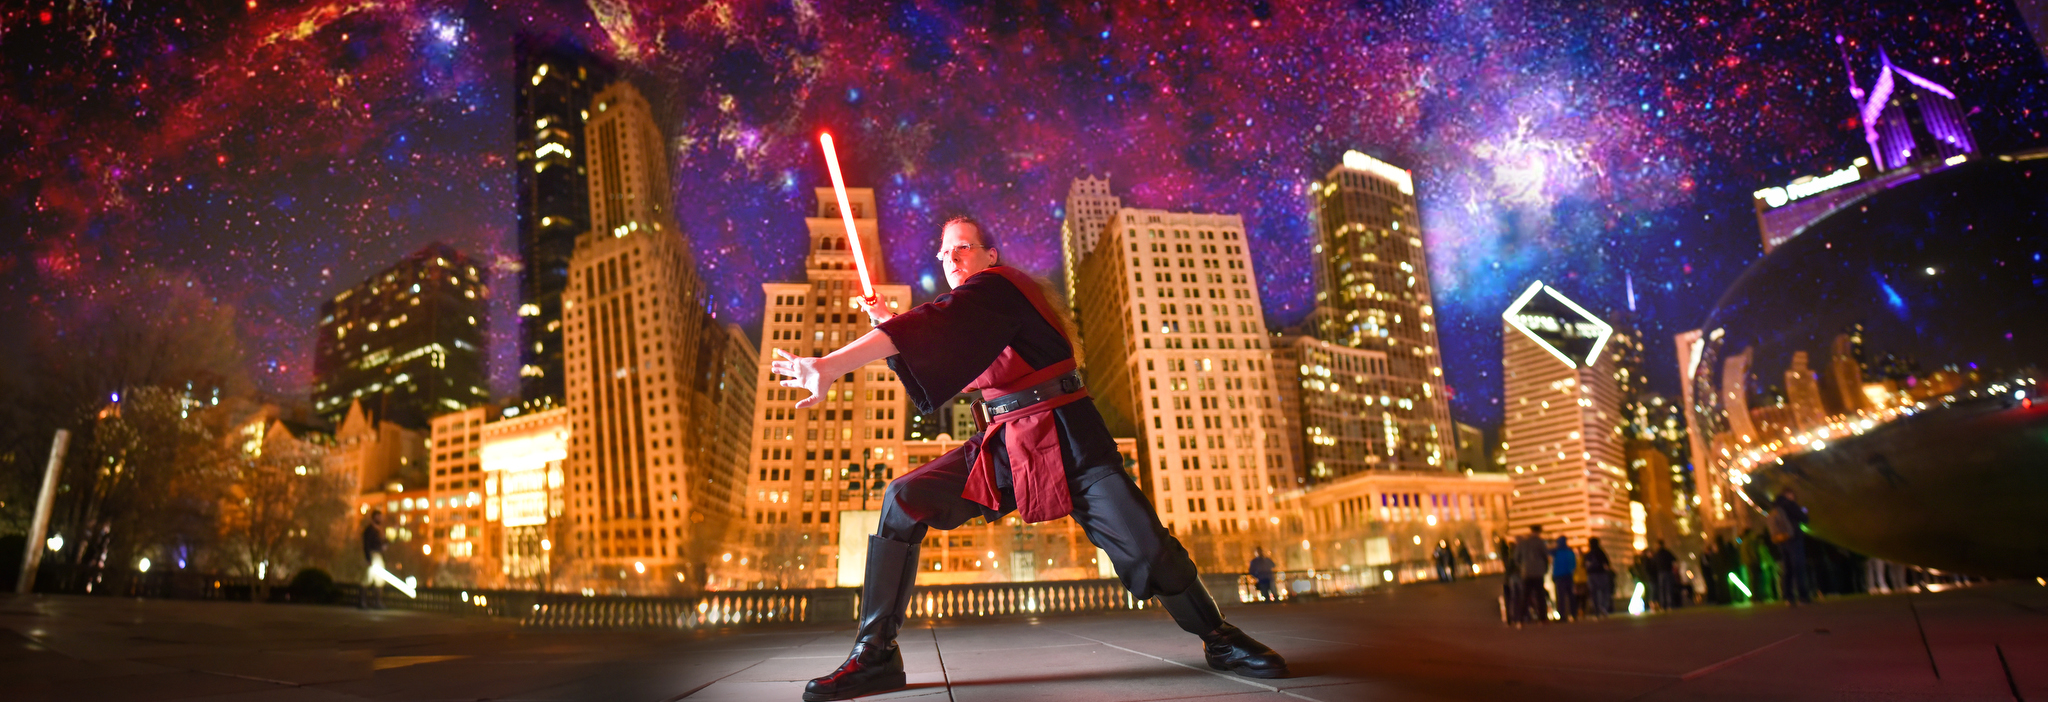 2019.04.14 - Star Wars Celebration Chicago 288841.JPG